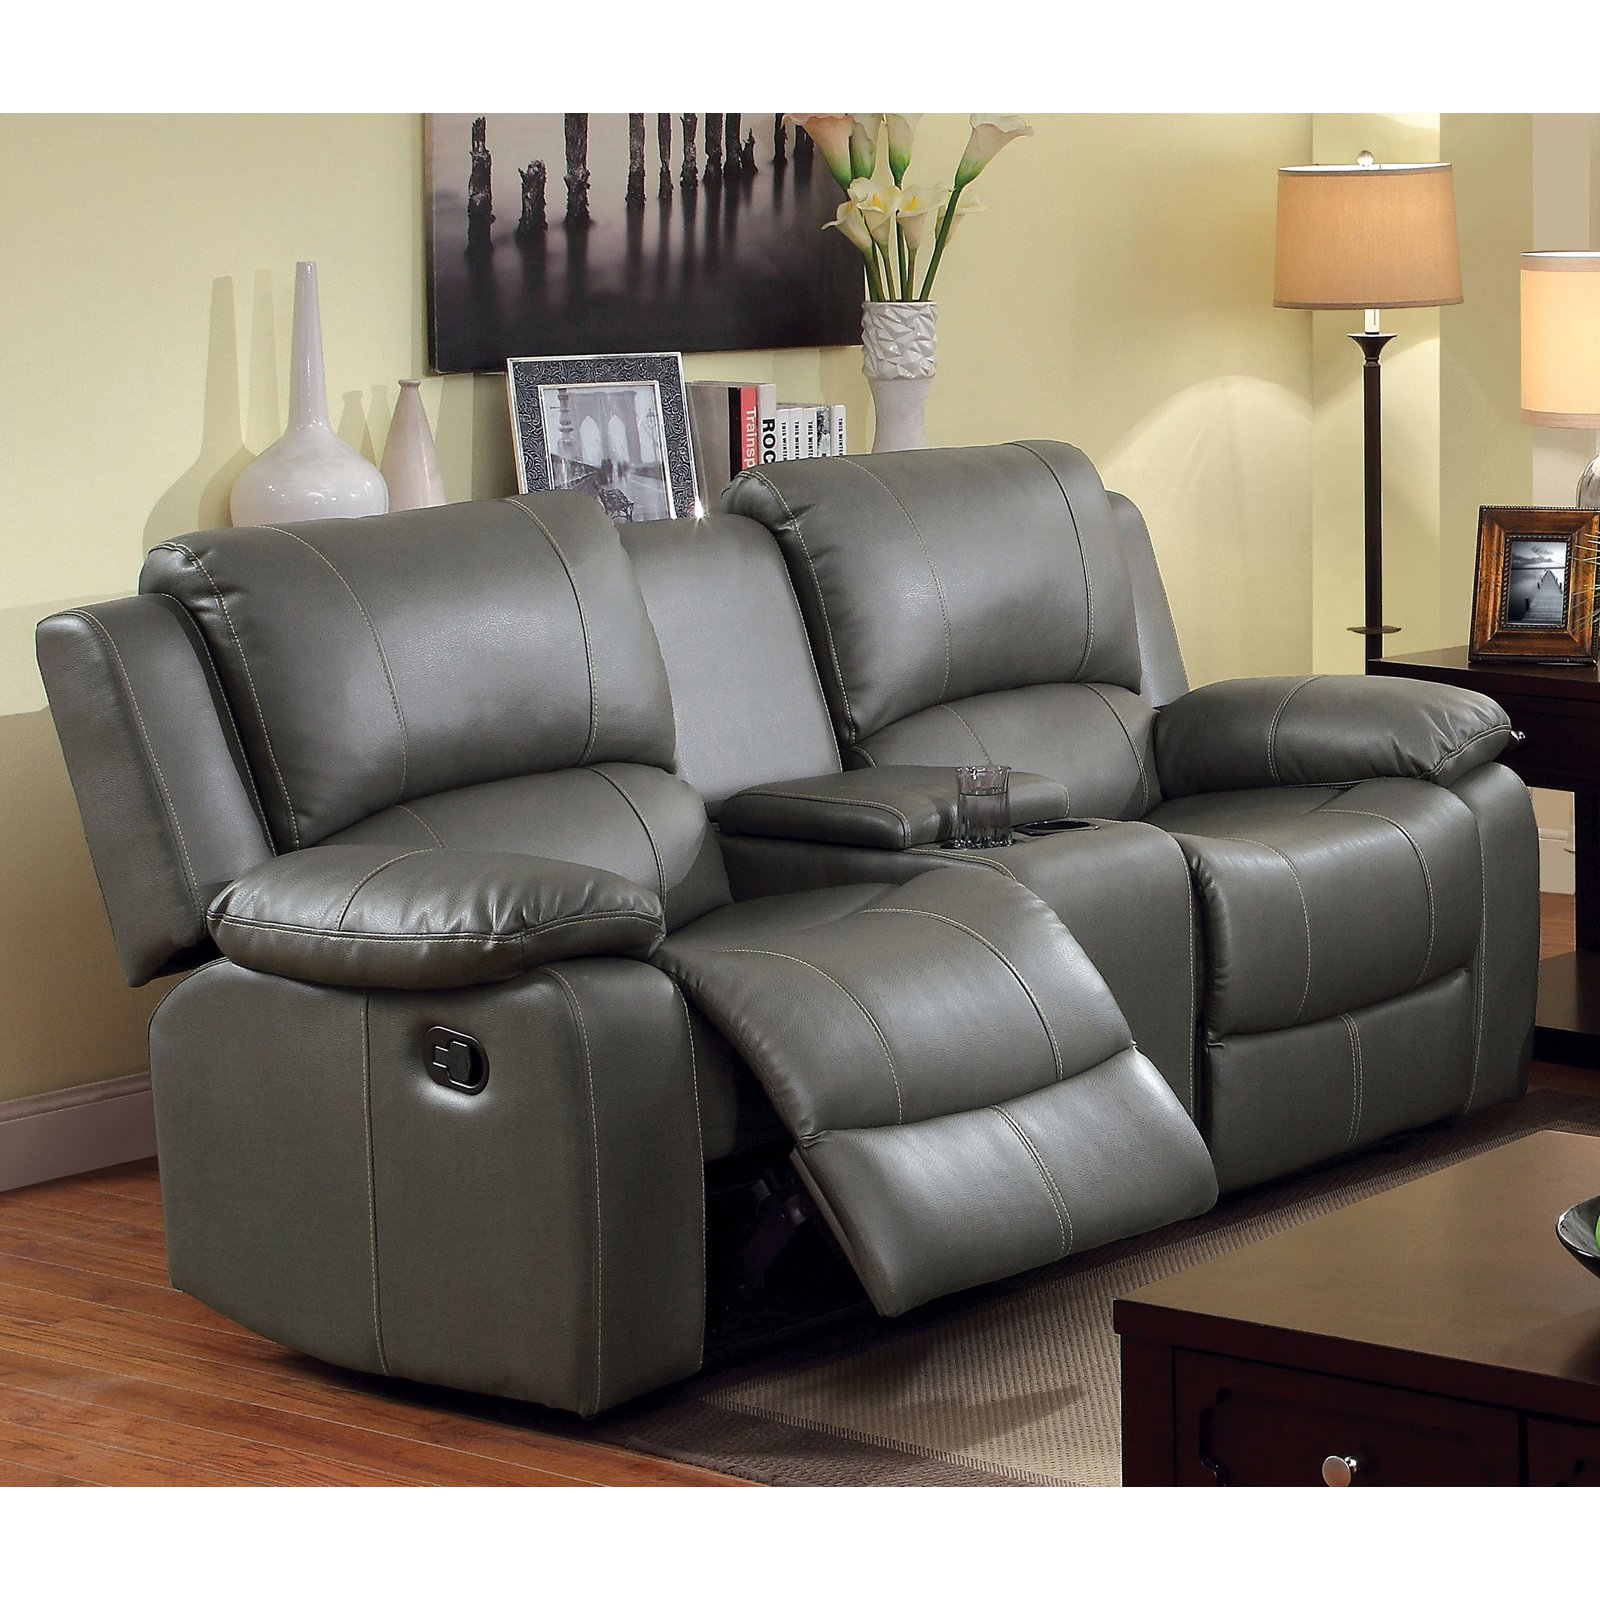 buy beverly fine furniture cecilia 3 piece living room set